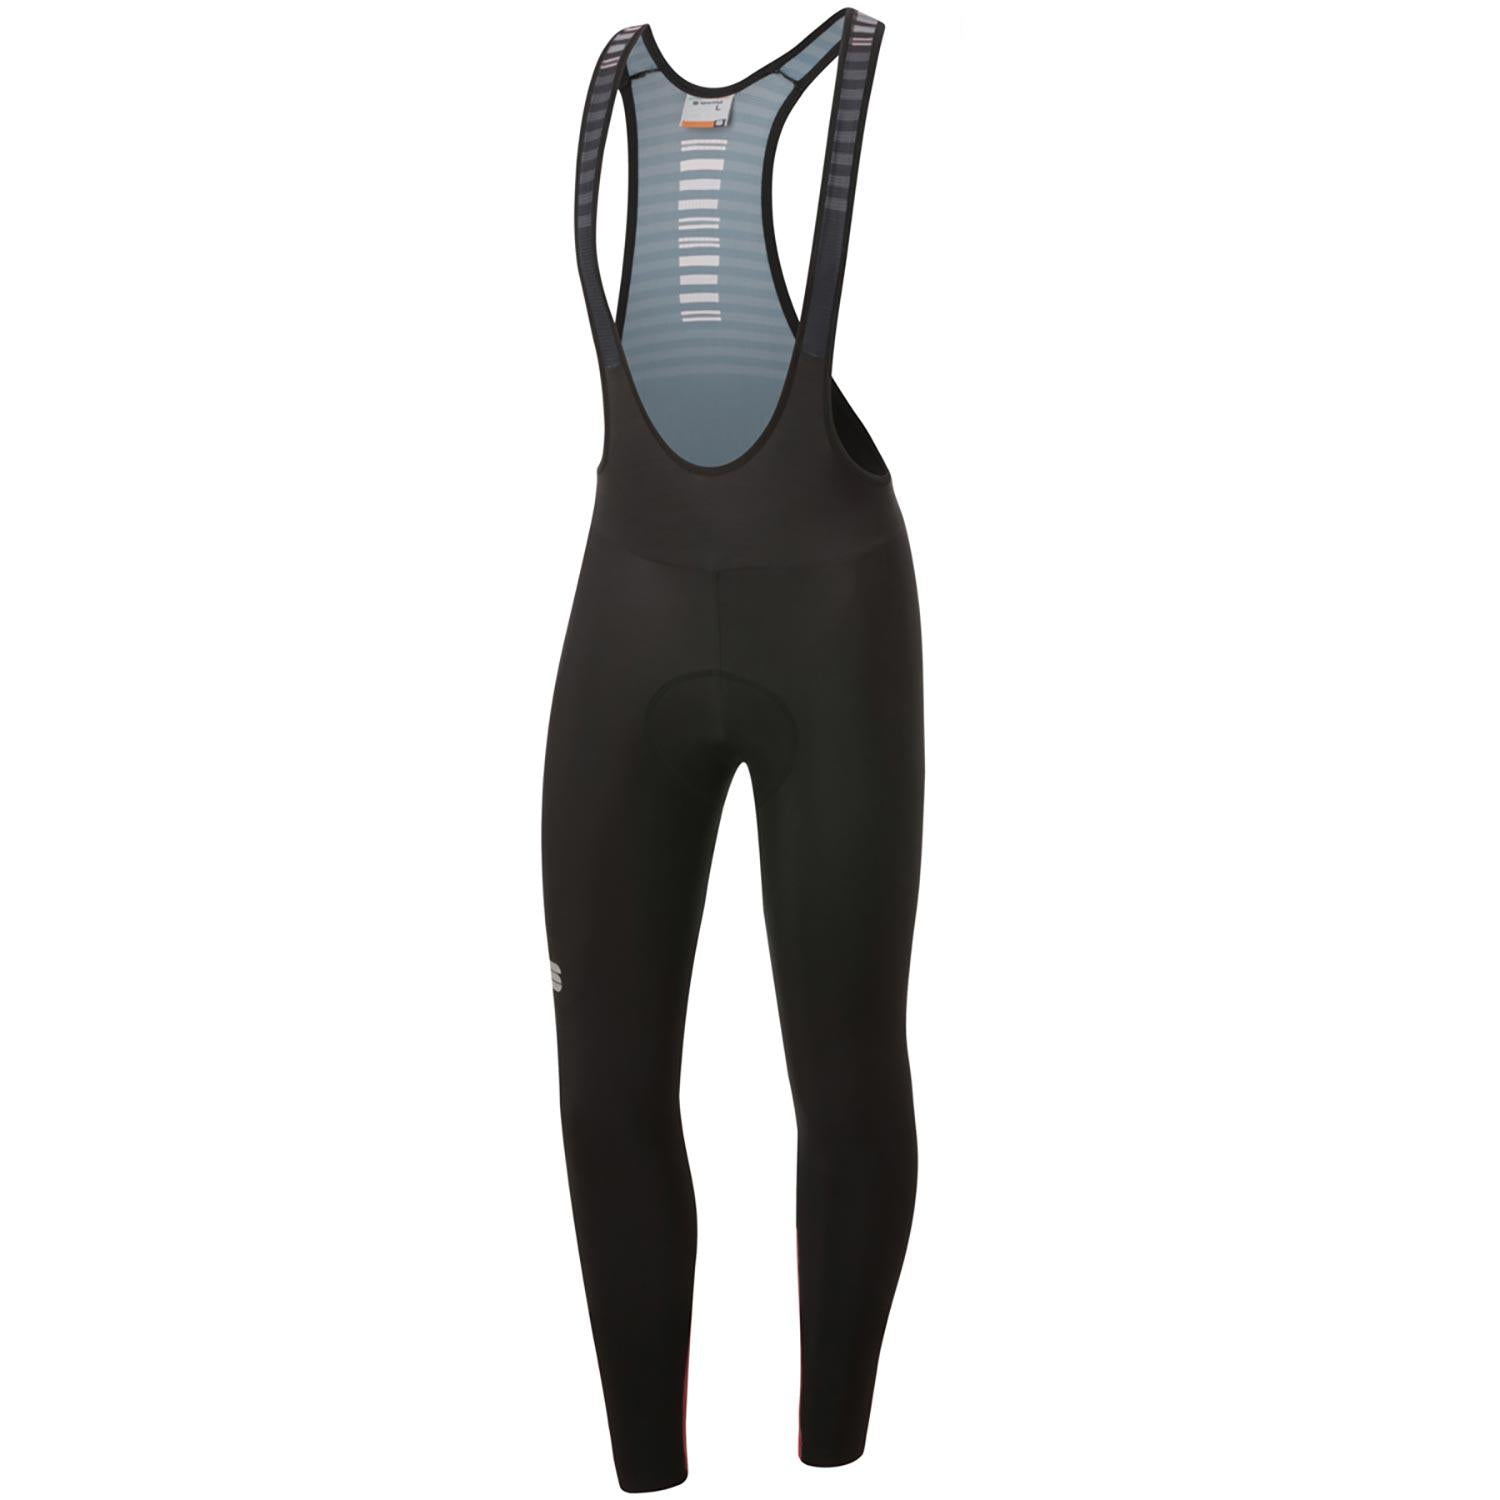 Sportful-Sportful Classic Race Bibtights-Black-S-SF205170022-saddleback-elite-performance-cycling